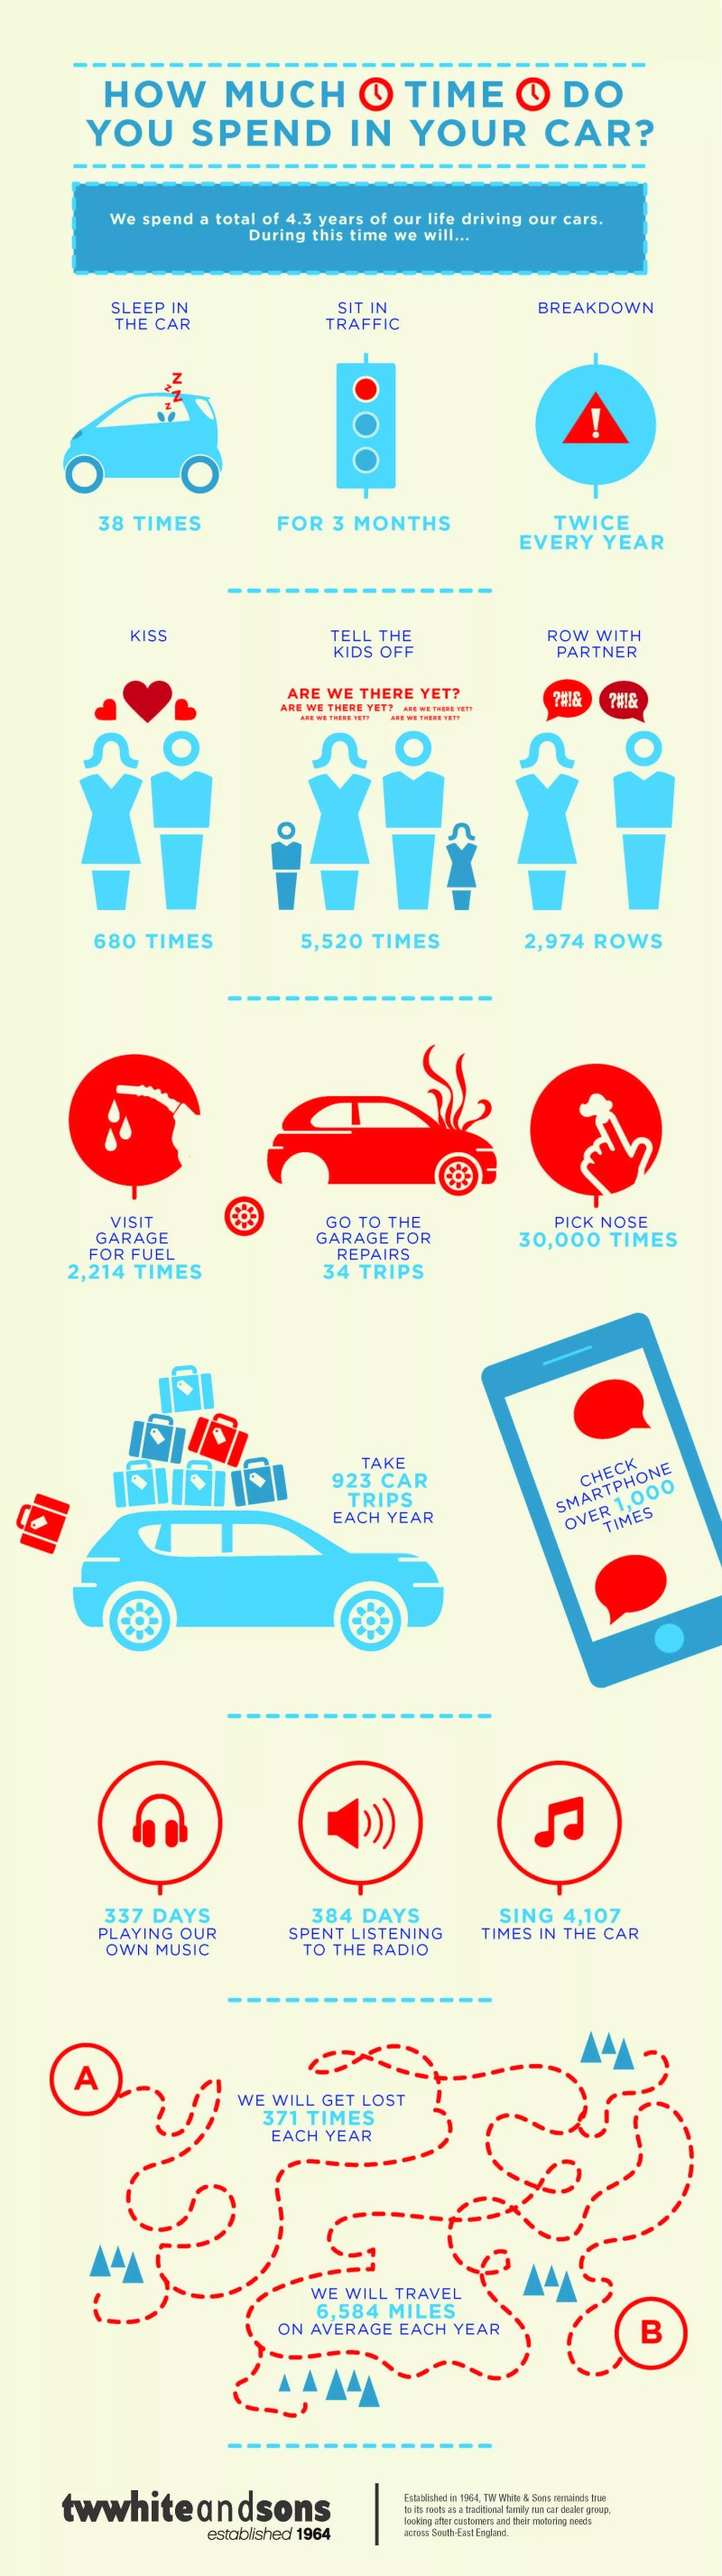 How much time do you spen in your car?